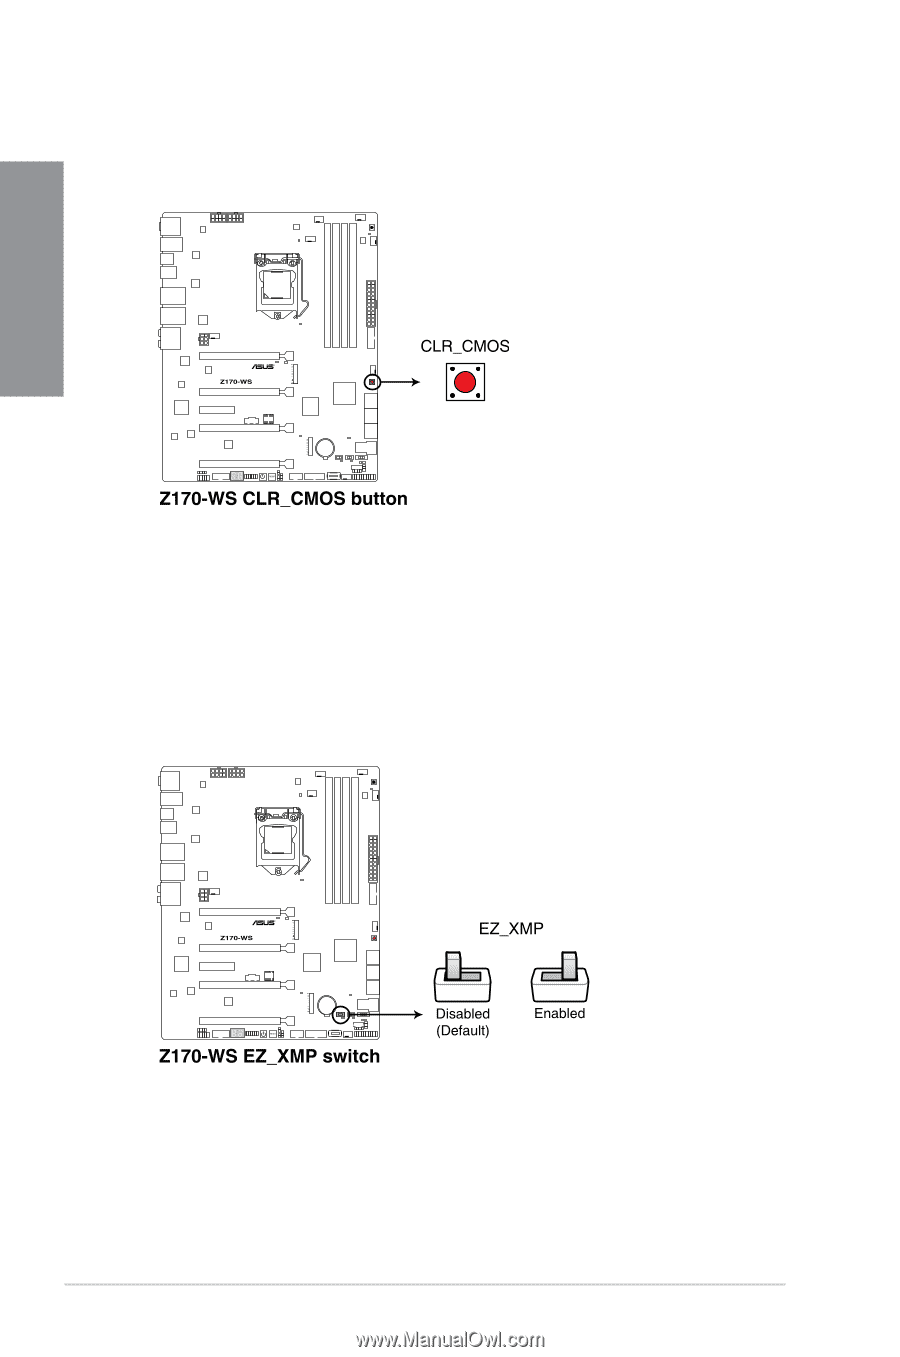 Asus Z170-WS | Z170-WS User Guide for English - Page 41